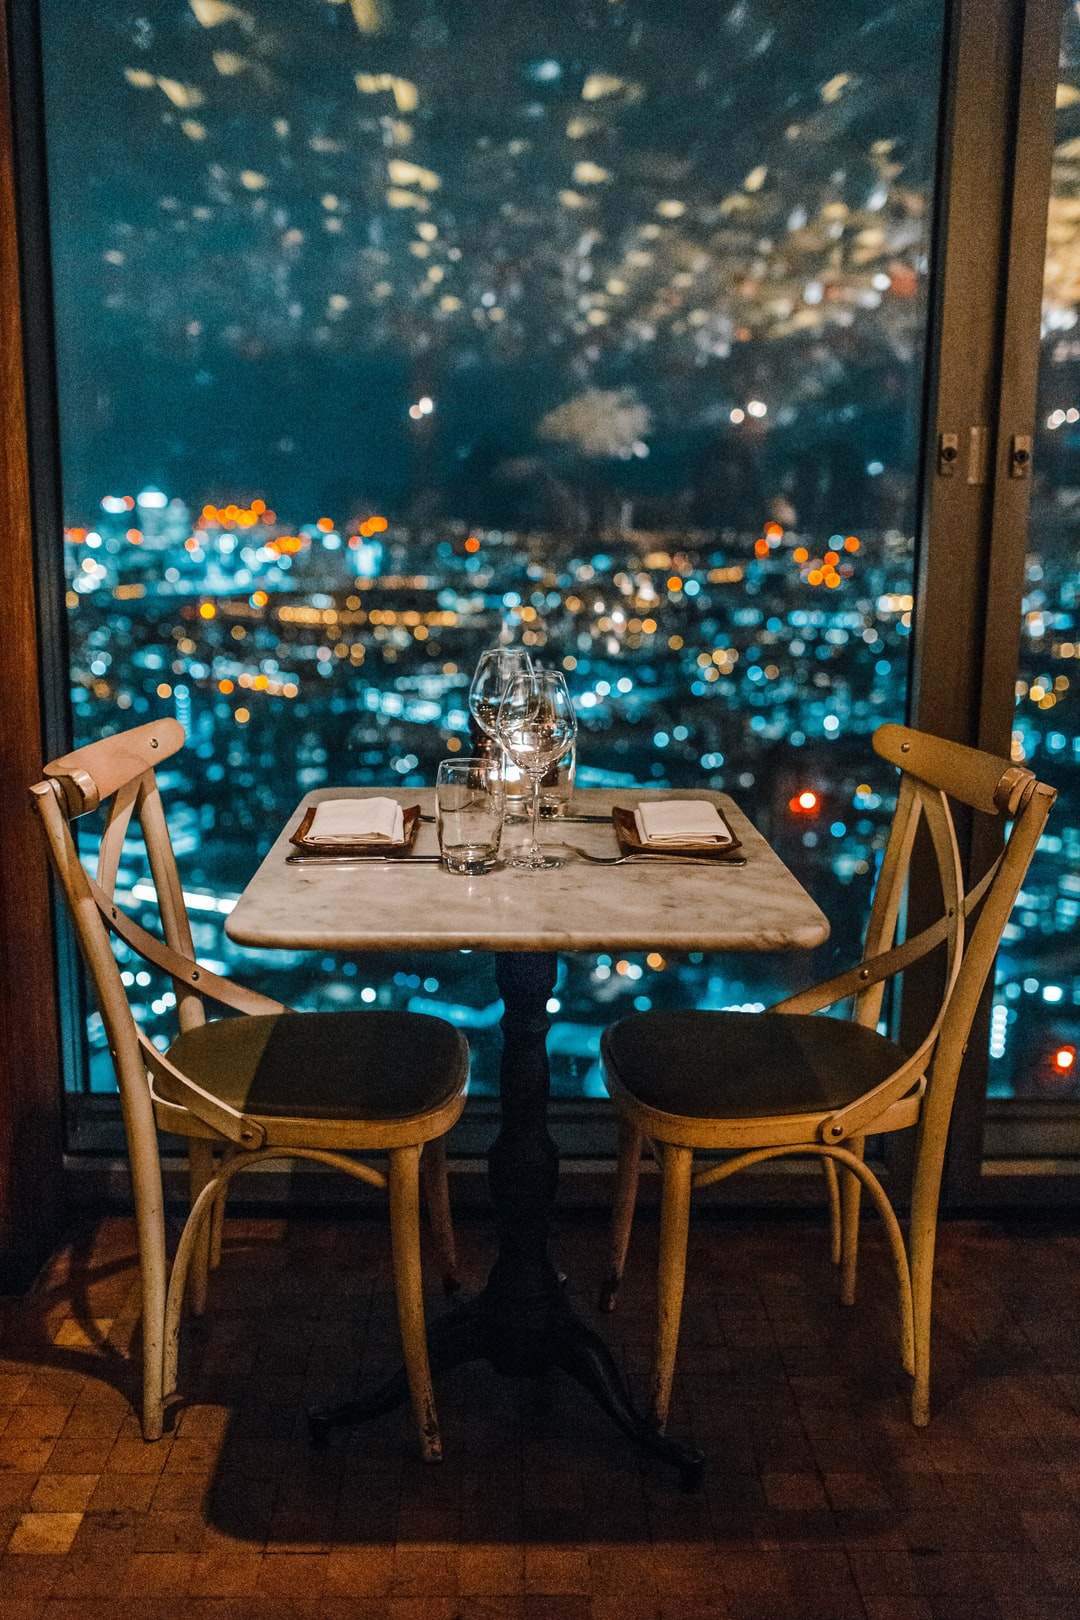 Lovely place to dinner